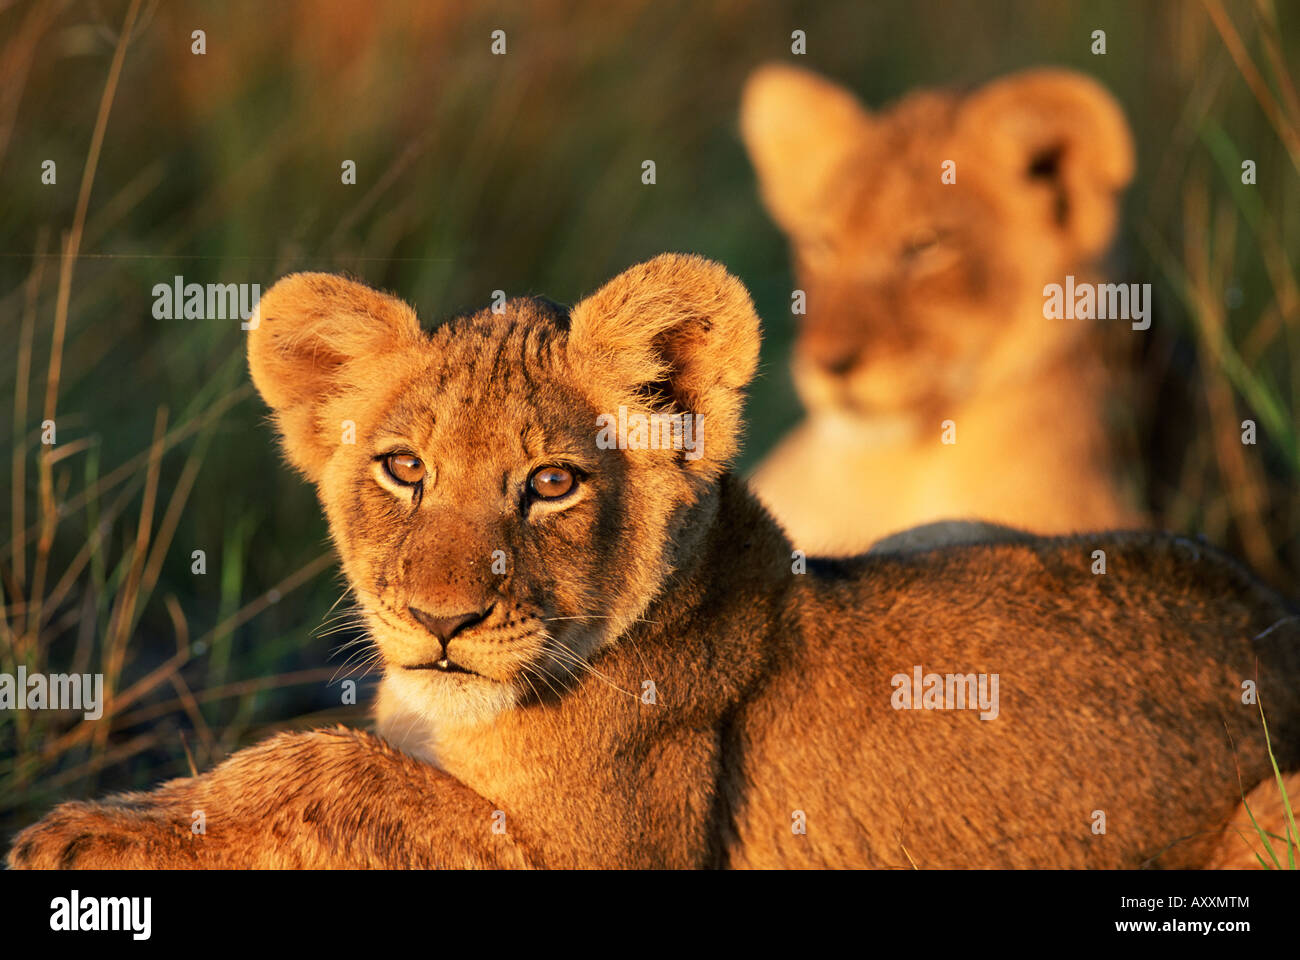 Lion cubs approximately 2-3 months old, Kruger National Park, South Africa, Africa - Stock Image